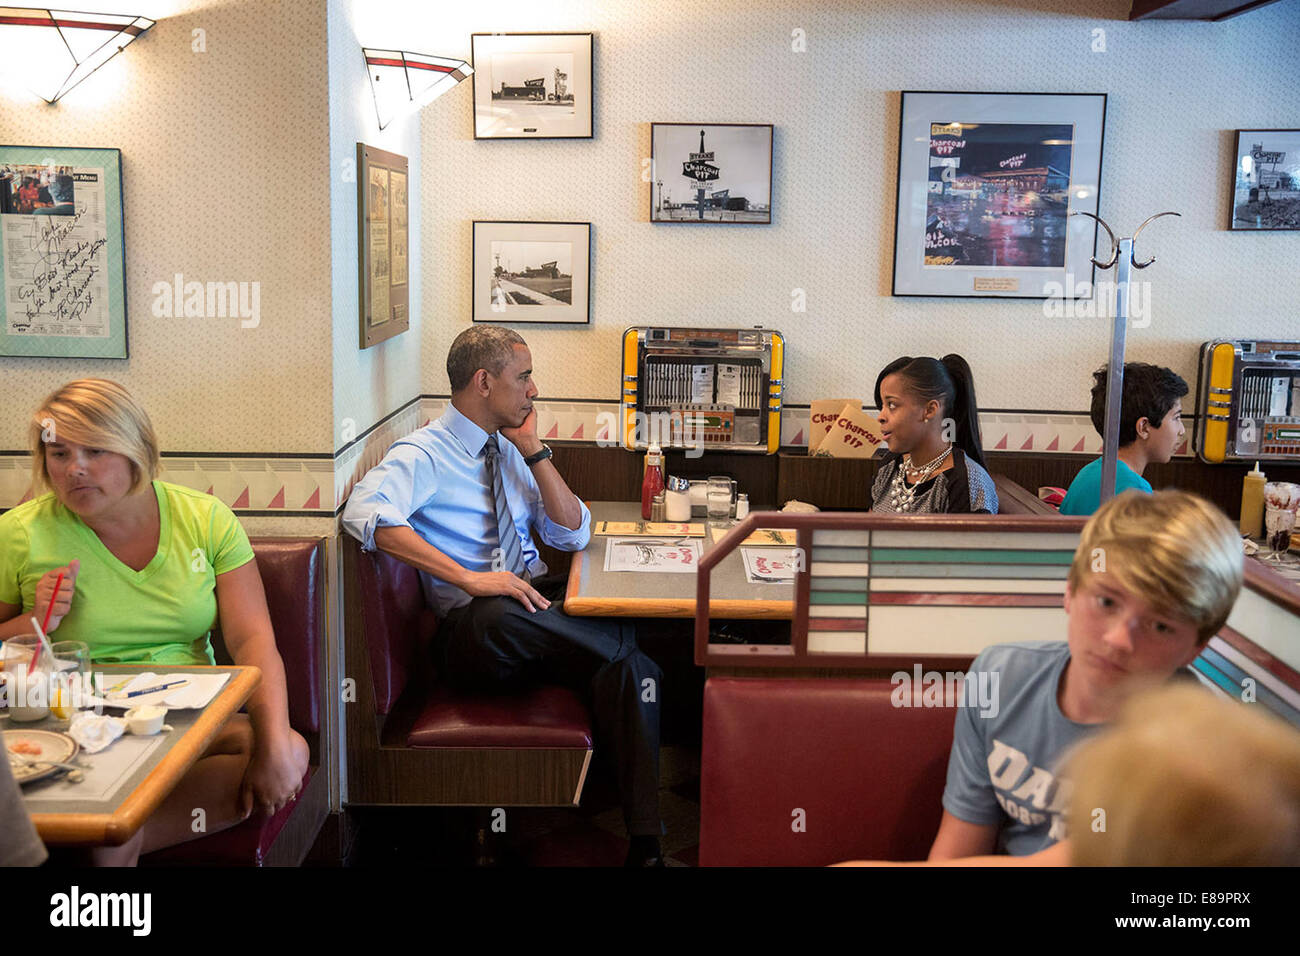 President Barack Obama meets with Tanei Benjamin during lunch at the Charcoal Pit restaurant in Wilmington, Del., - Stock Image